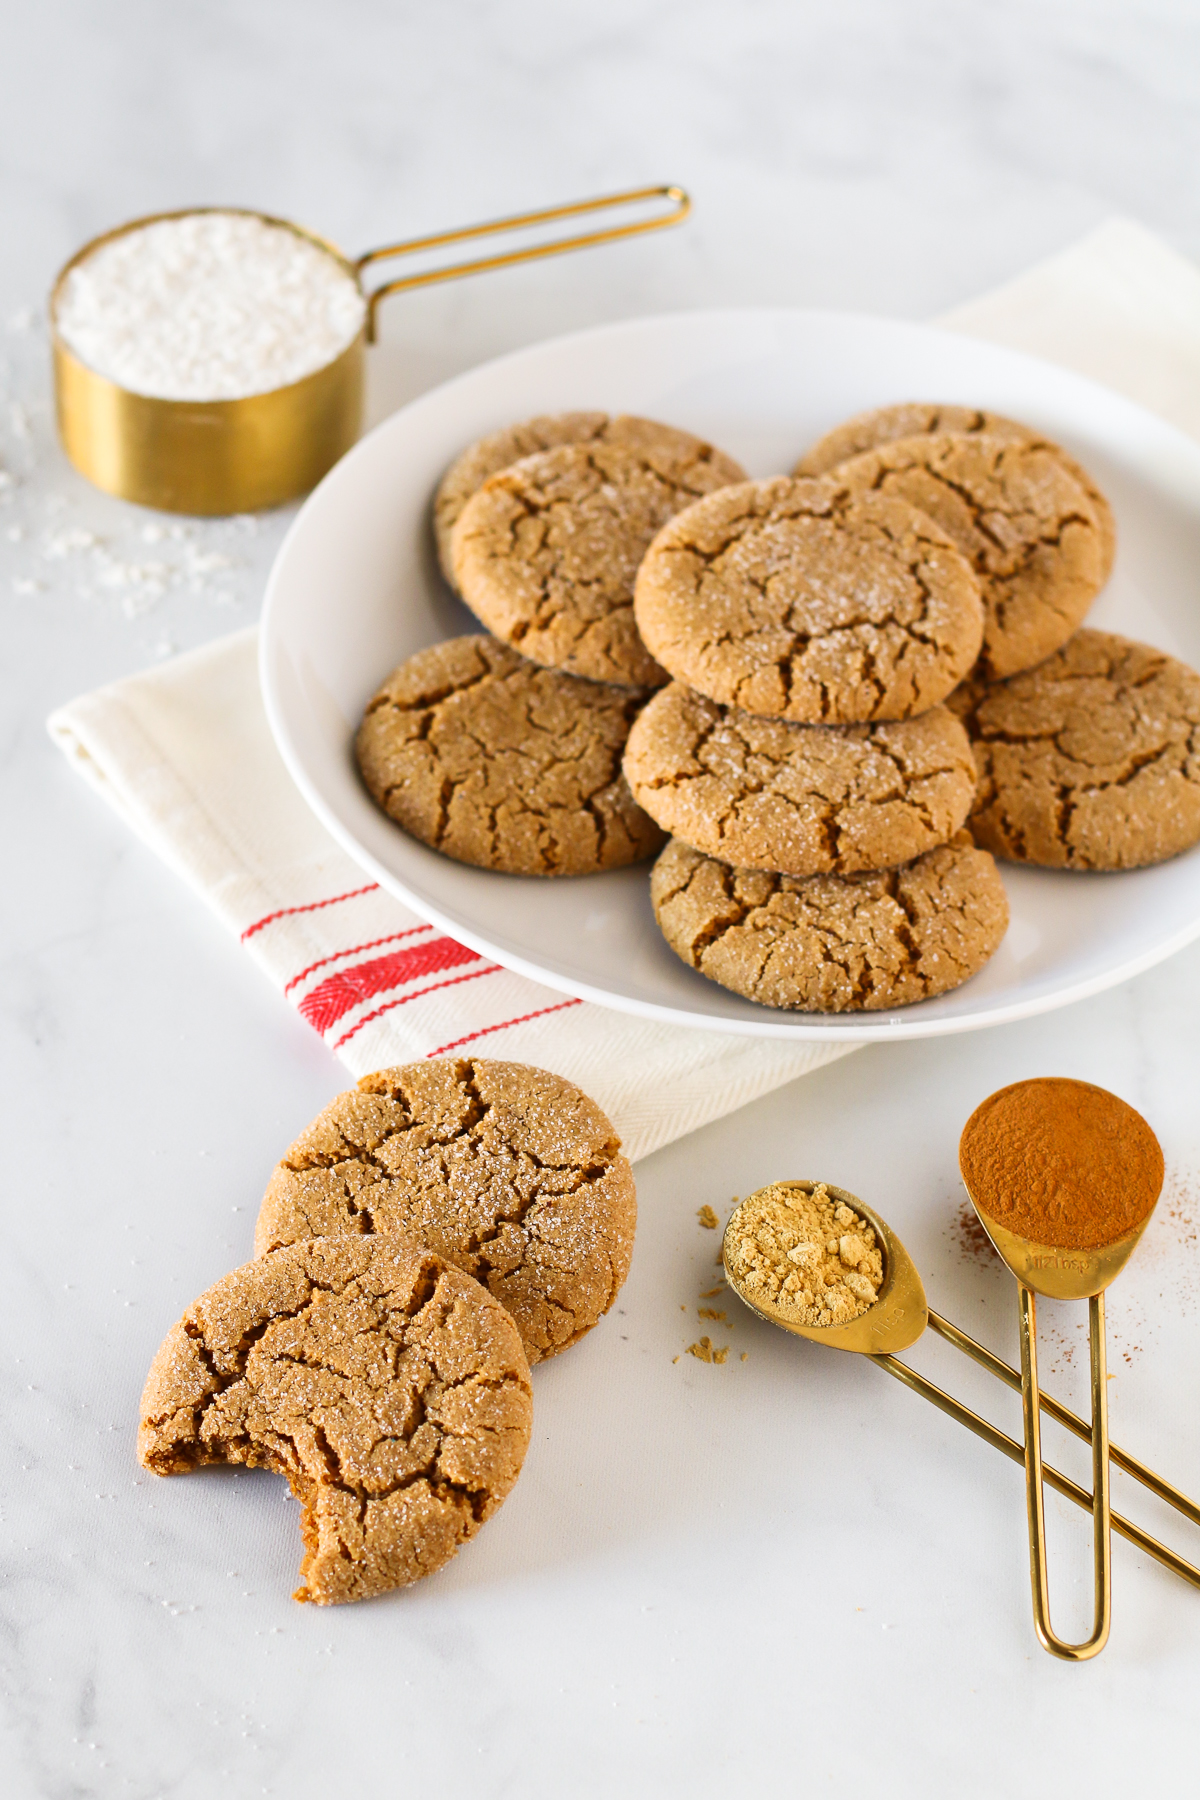 Gluten Free Vegan Molasses Cookies. Soft, chewy and perfectly spiced. A classic holiday cookie!